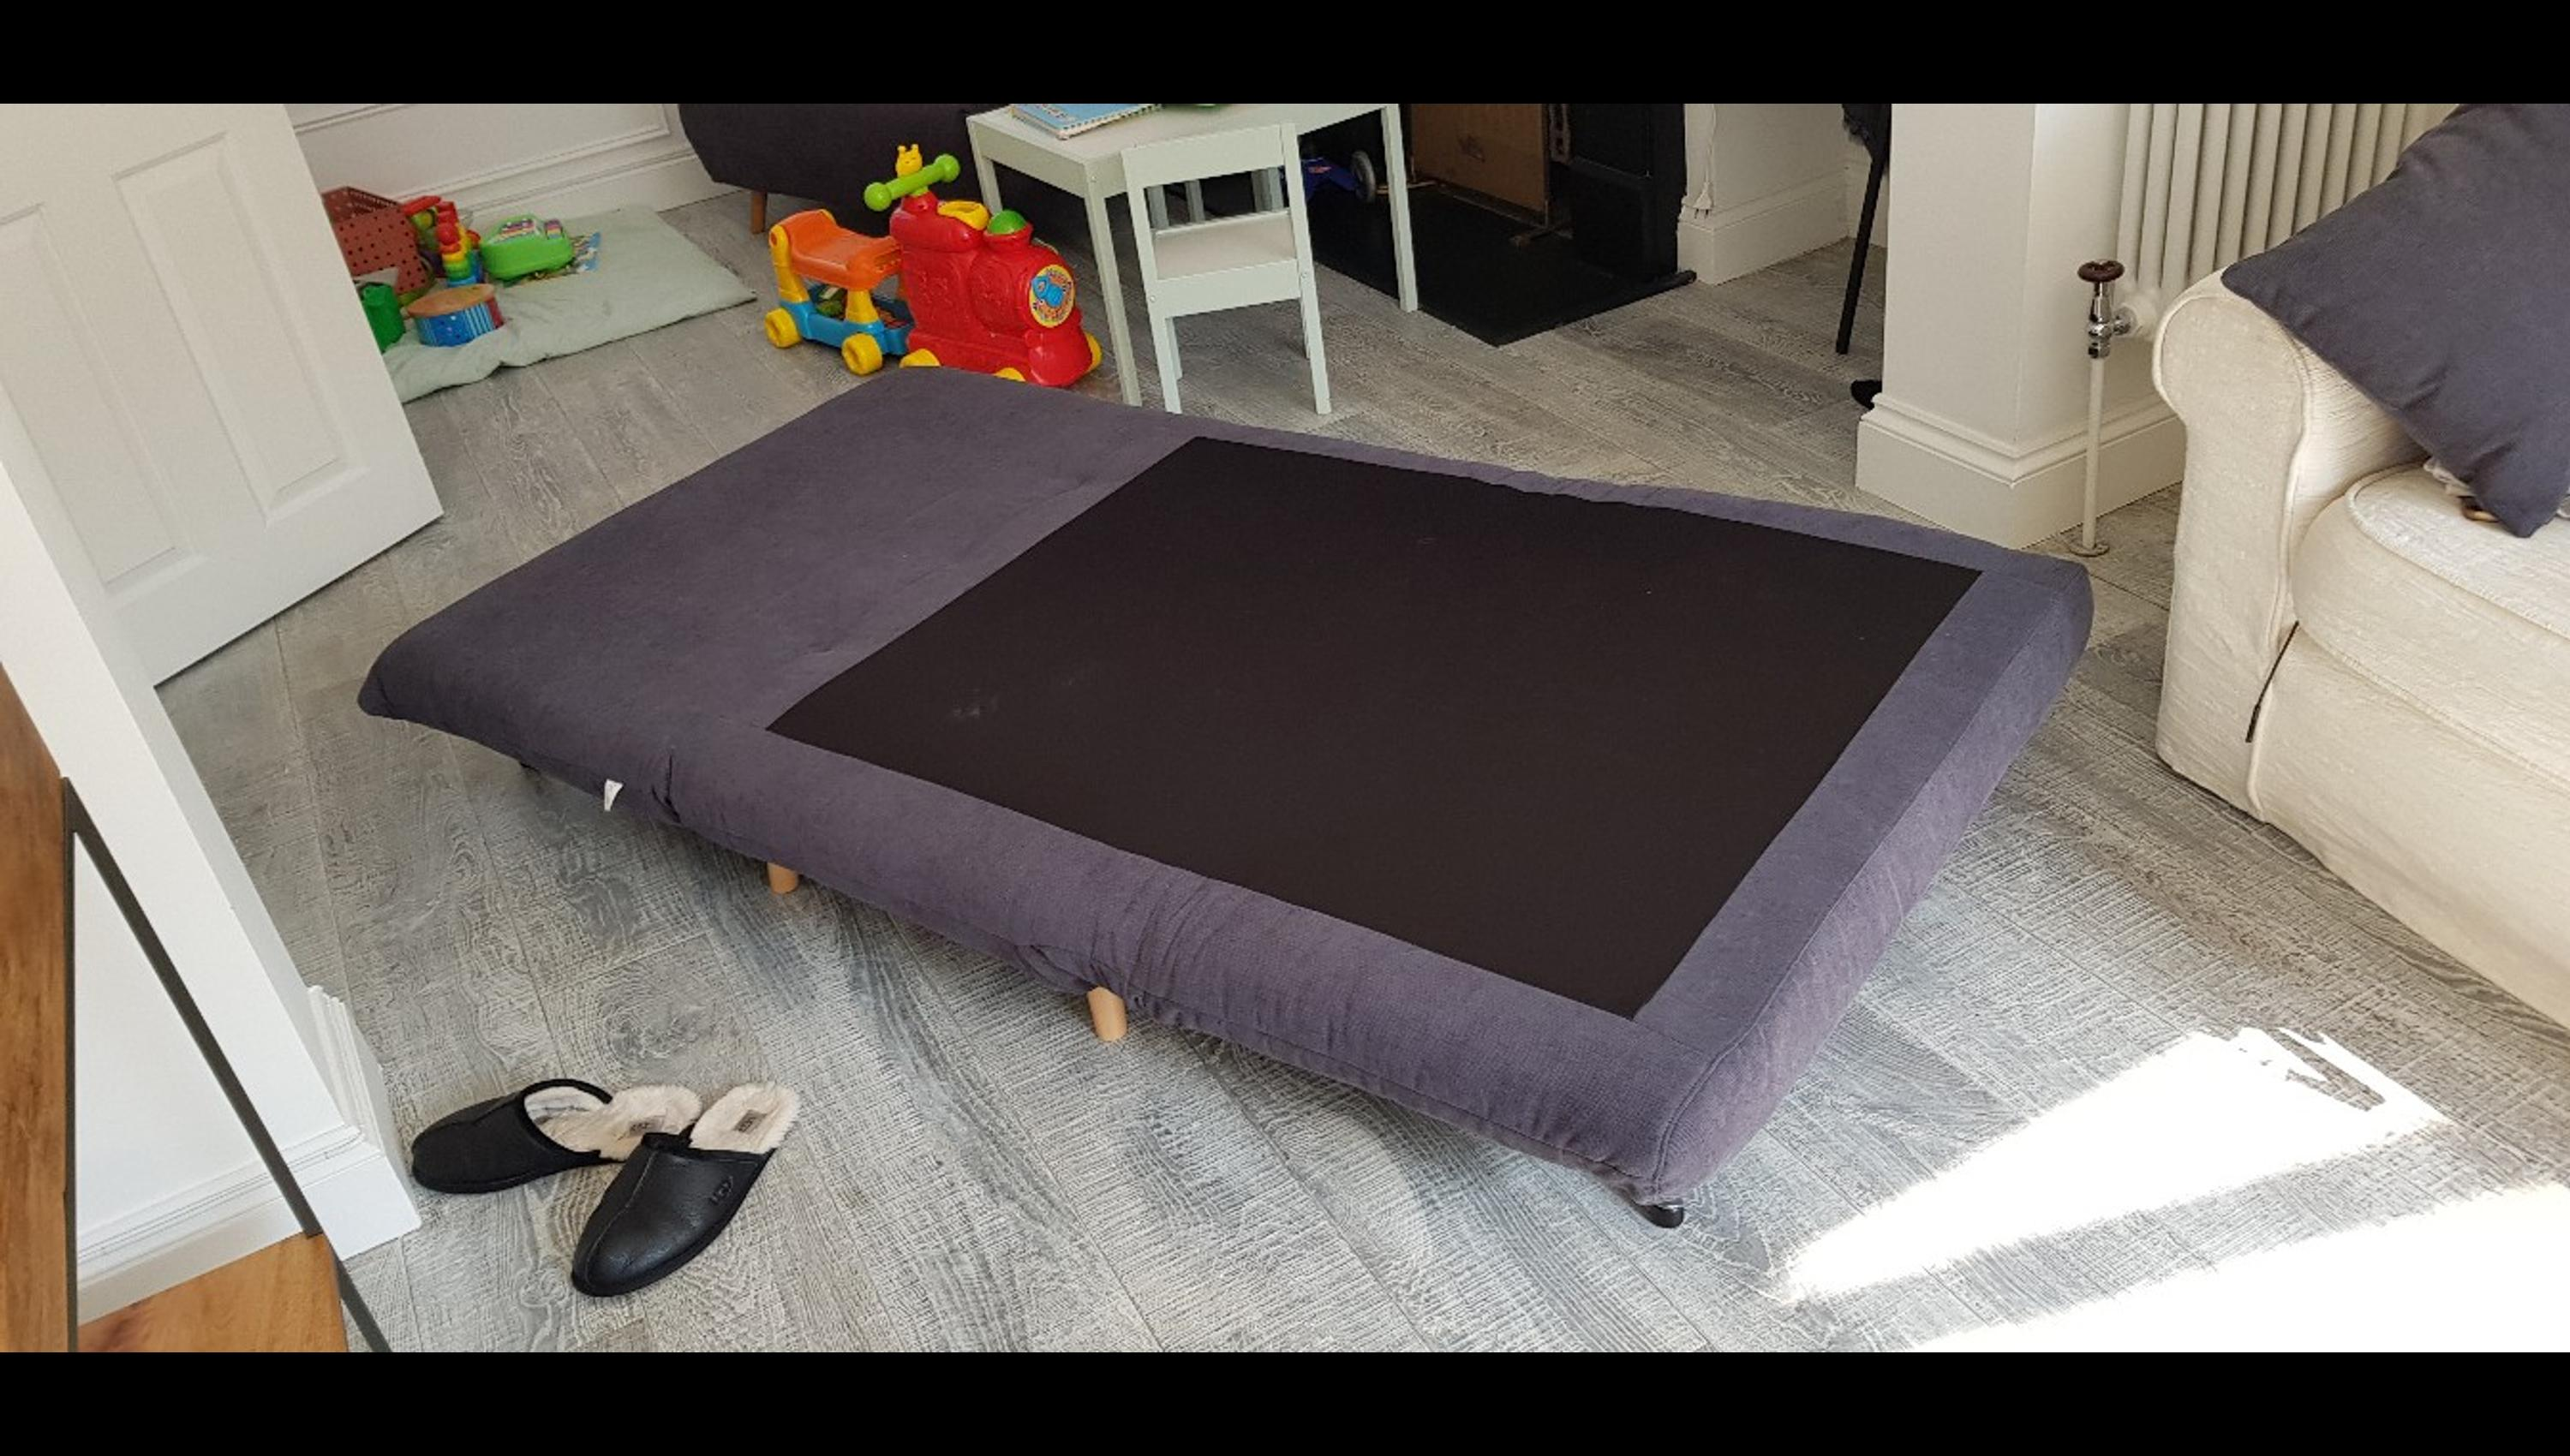 Maison Du Monde Nio Daybed Sofa Bed In Sw6 London For 150 00 For